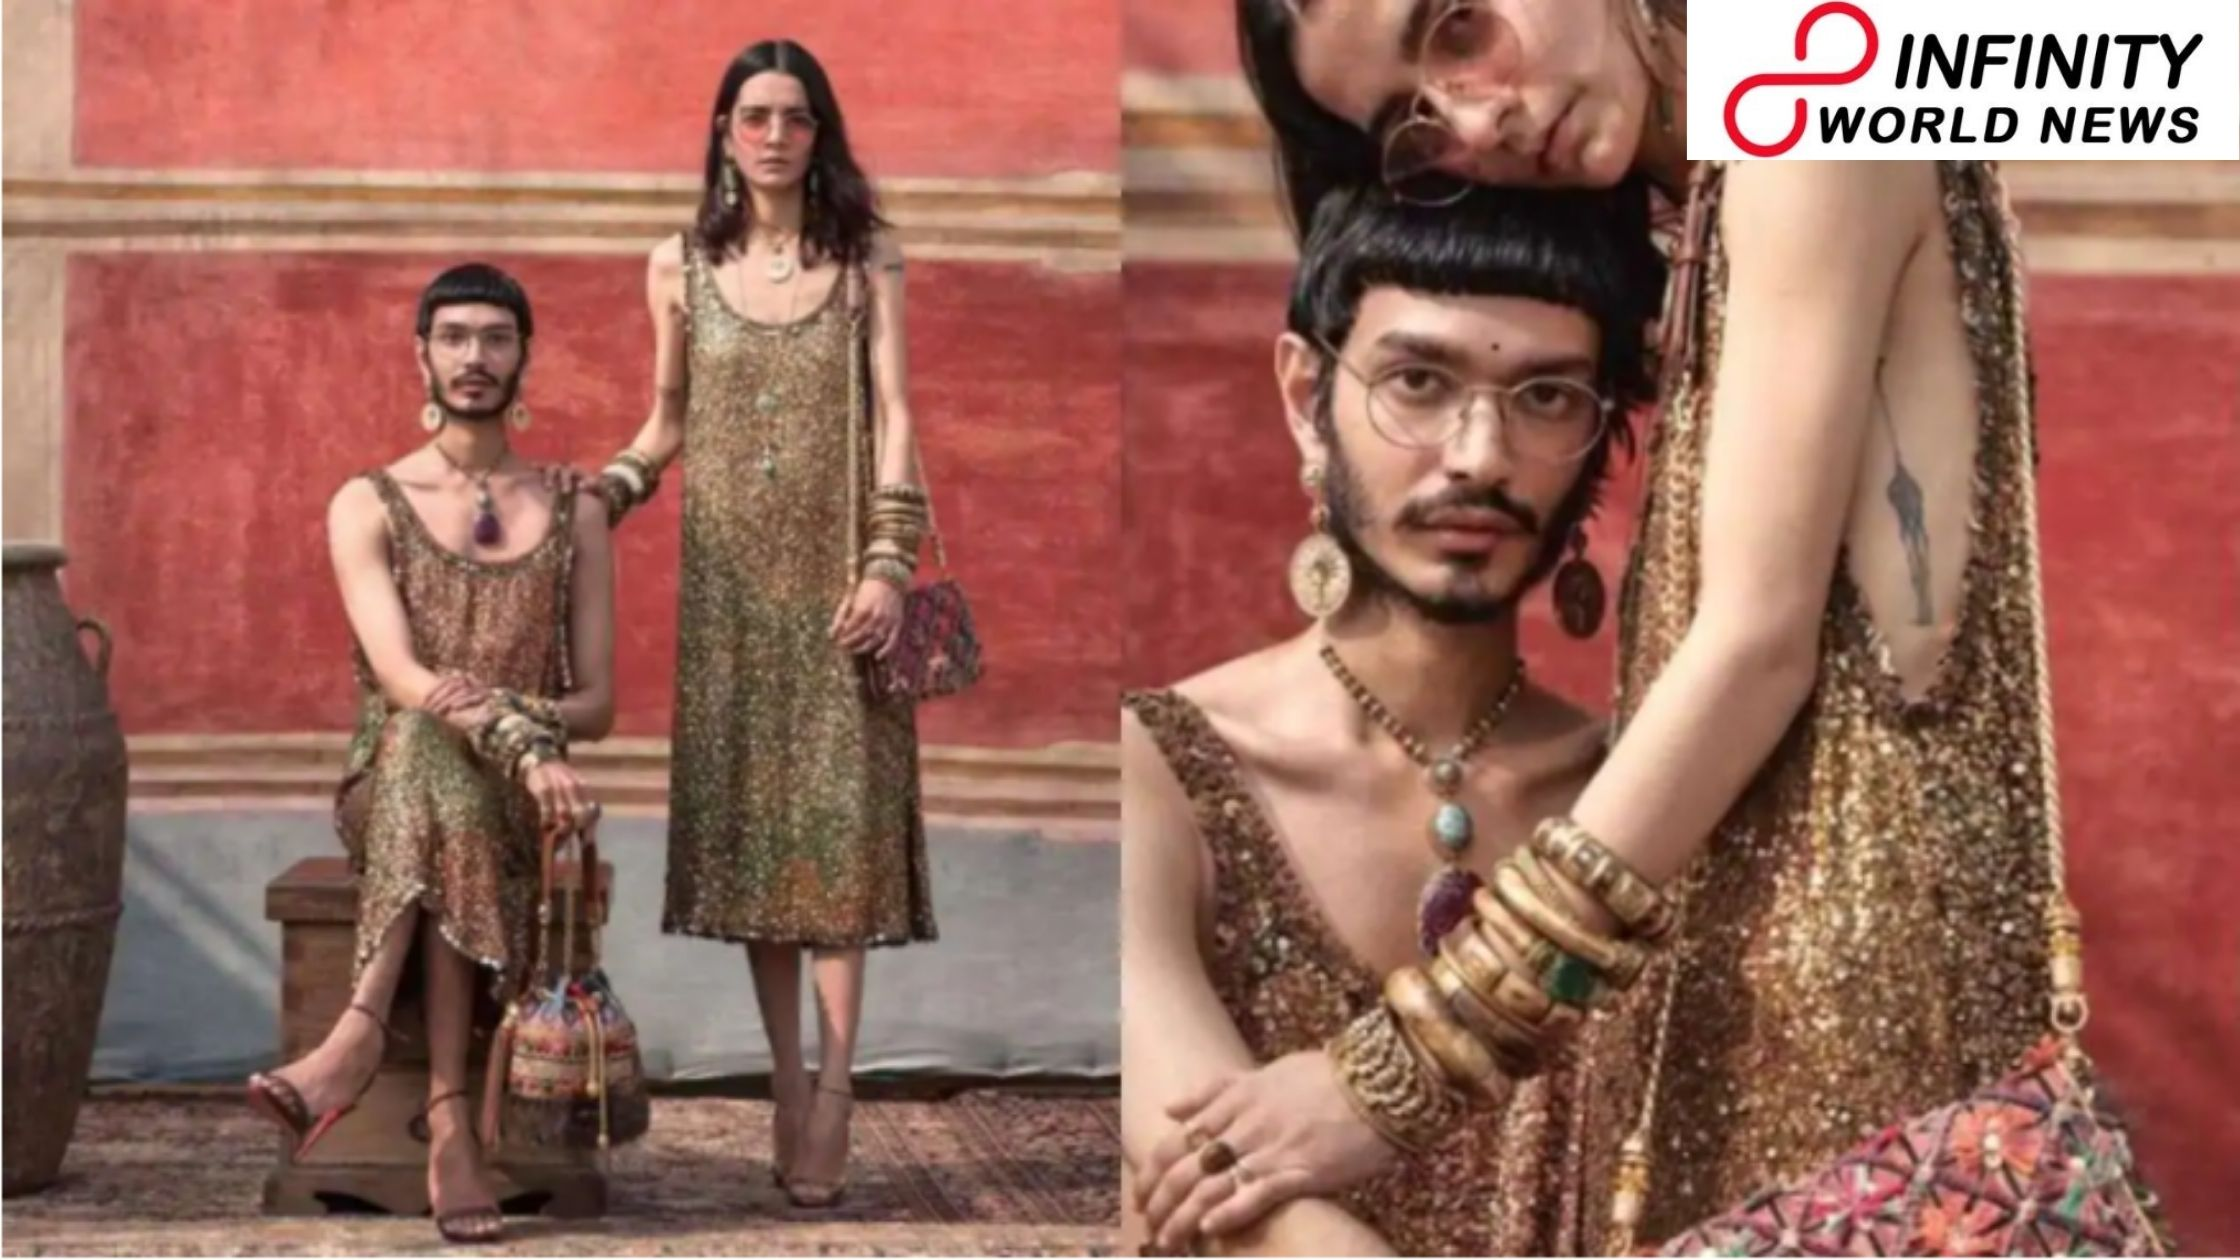 'Why Is A Guy Clothing Dress and Heels?': Sabyasachi's New Gender-Fluid Accumulation Sparks Debate